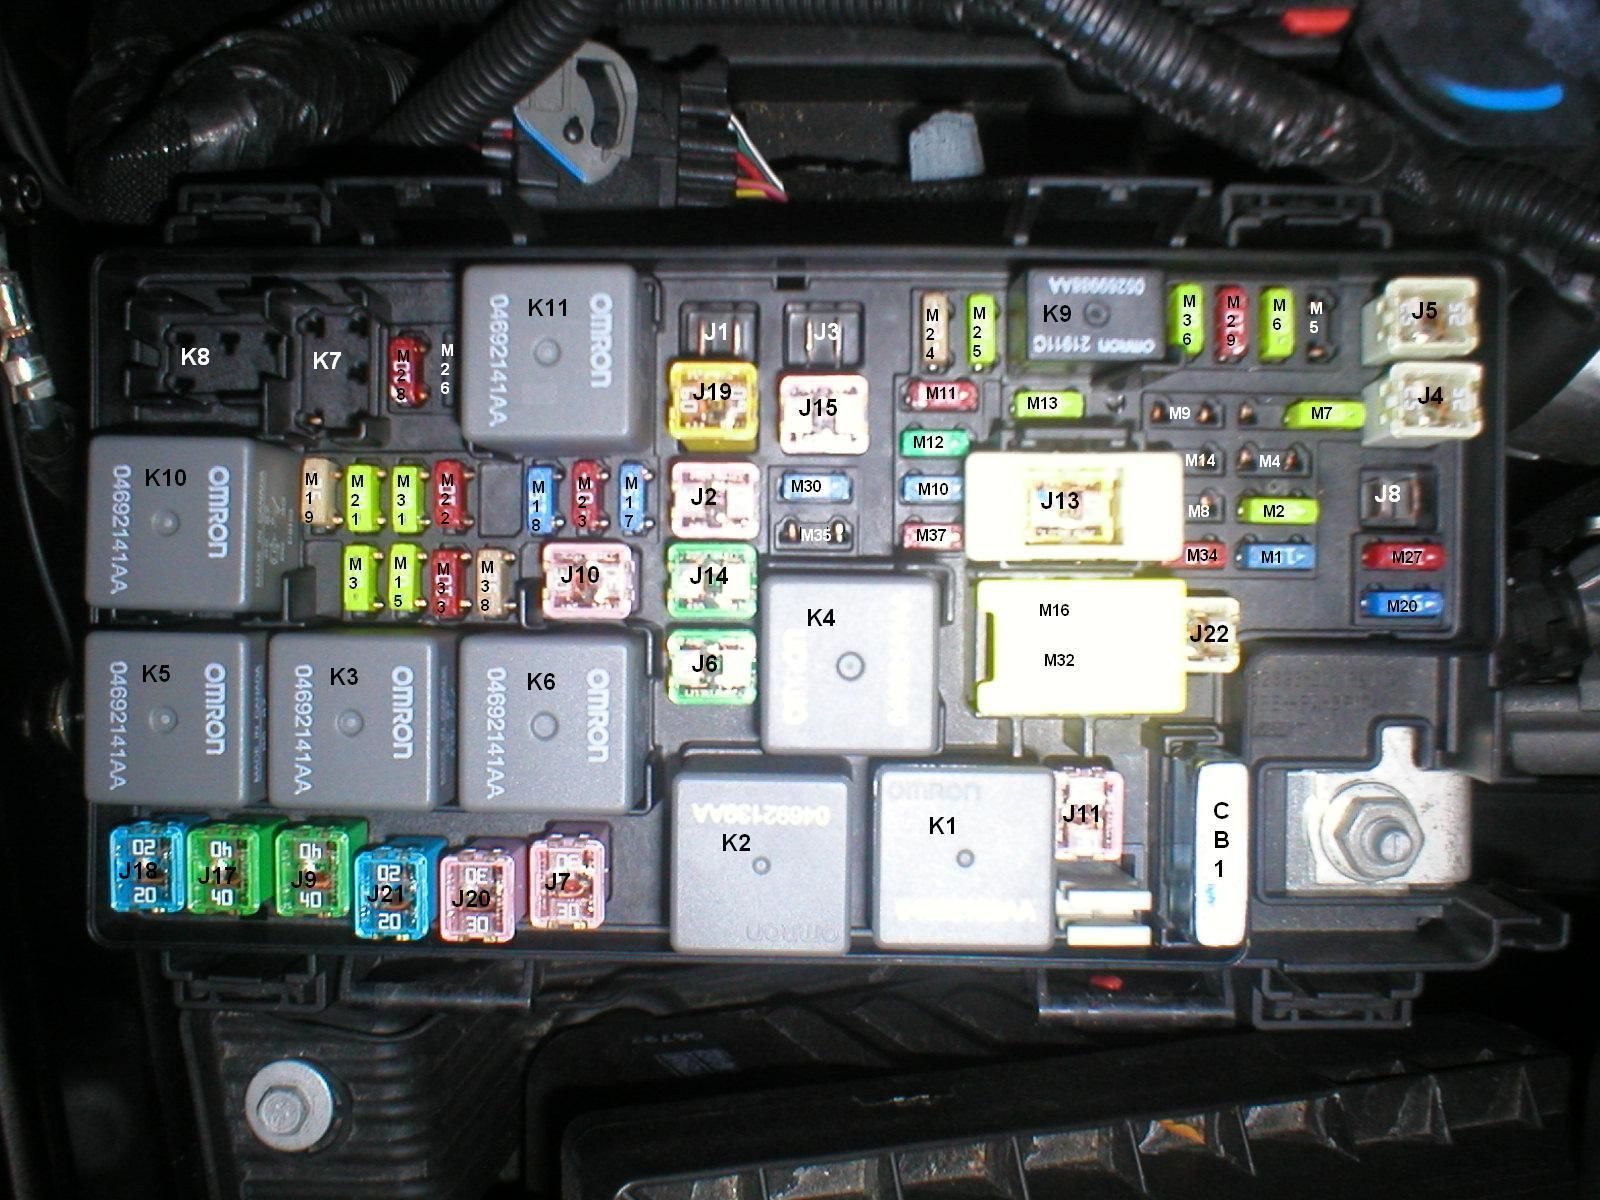 jeep jk fuse box map layout diagram jeepforum com just empty 2008 Jeep Jk Tie Rod jeep jk fuse box map layout diagram jeepforum com